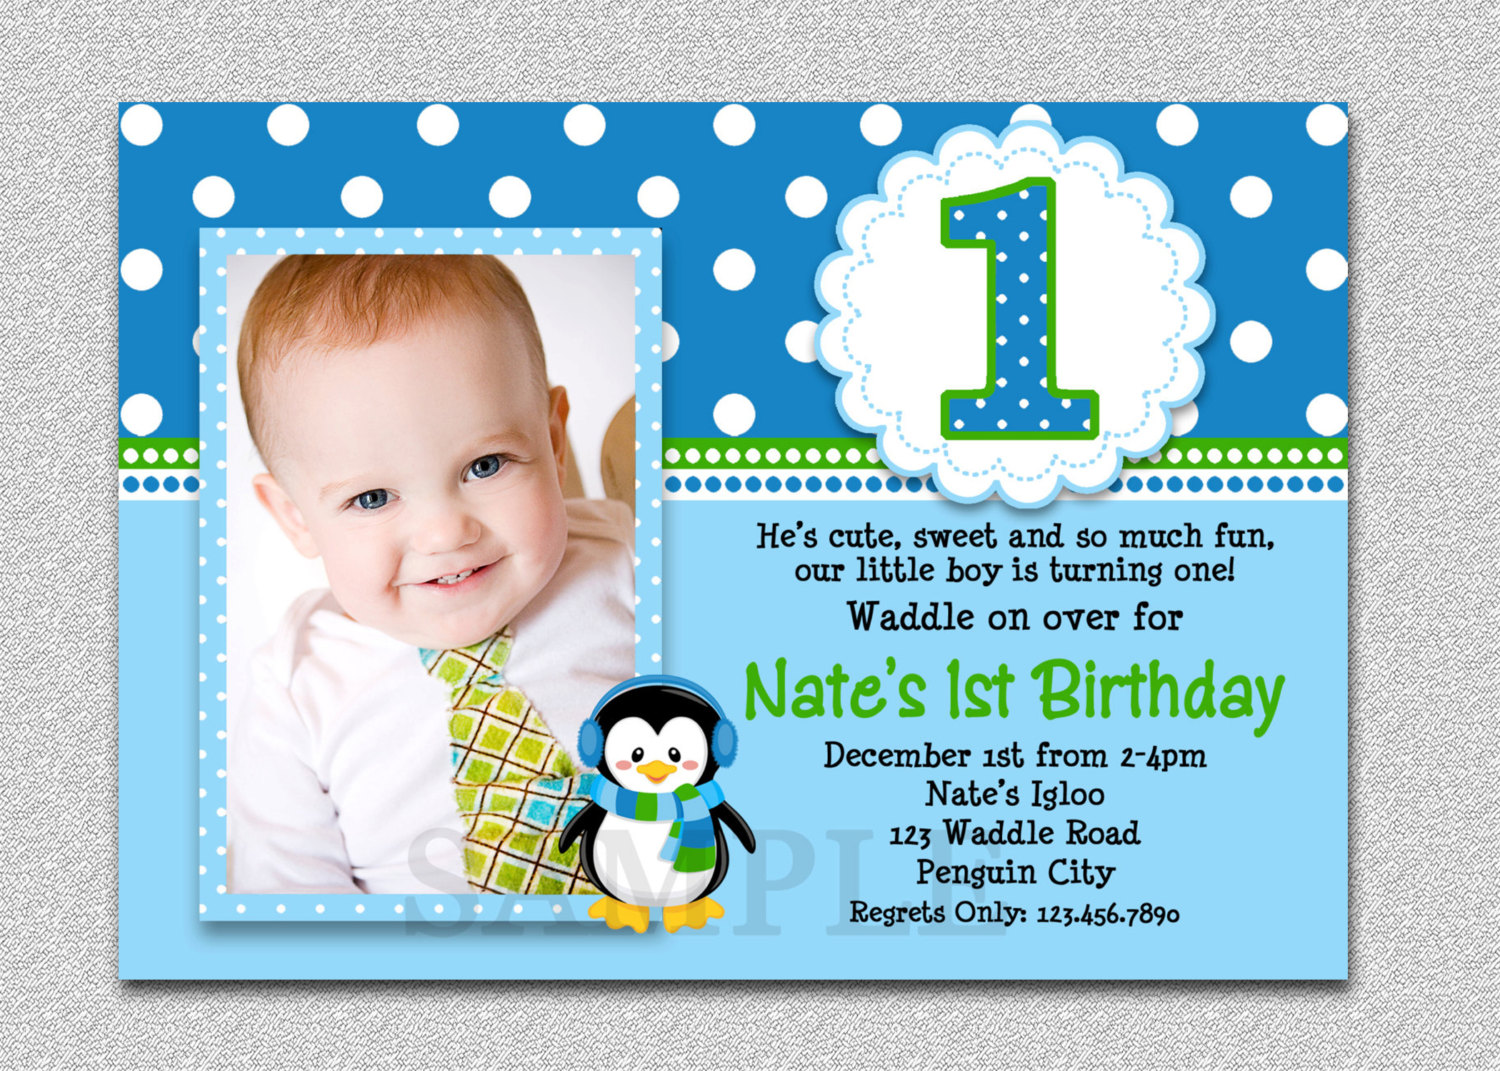 one year old birthday invitation templates ; Penguin-Birthday-Invitation-Penguin-Elegant-Invitation-For-One-Year-Old-Birthday-Party